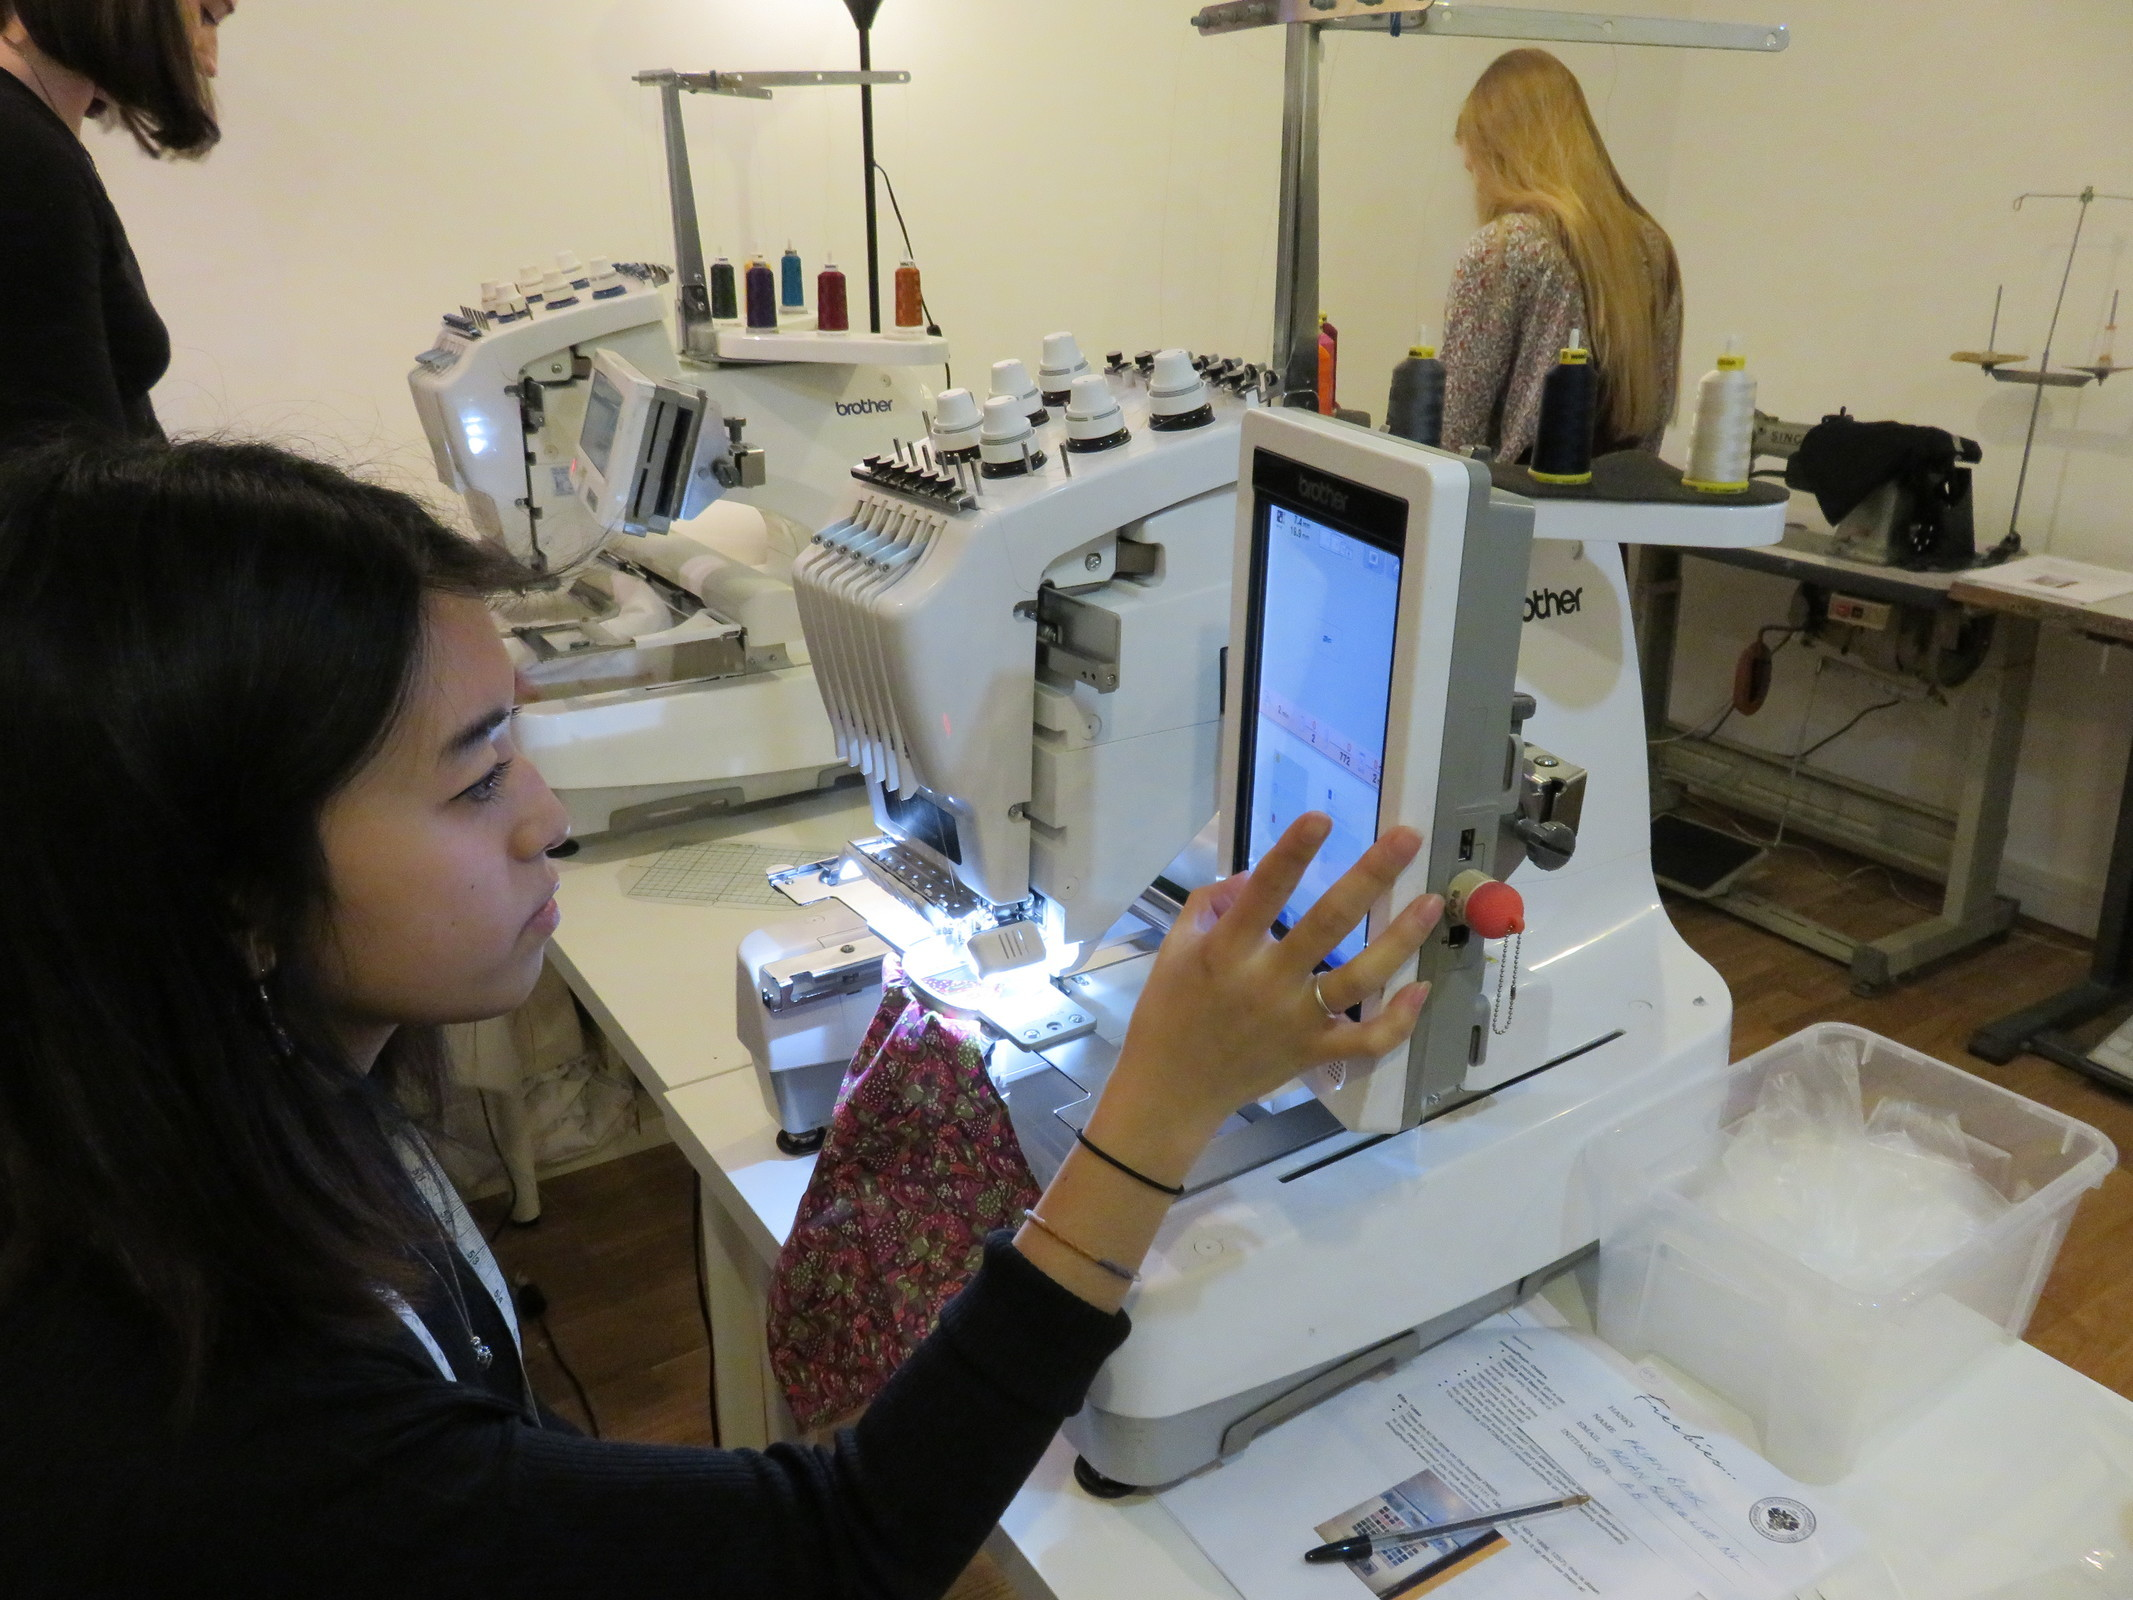 Hawthorne & Heaney Employment Opportunities London Hand Embroidery